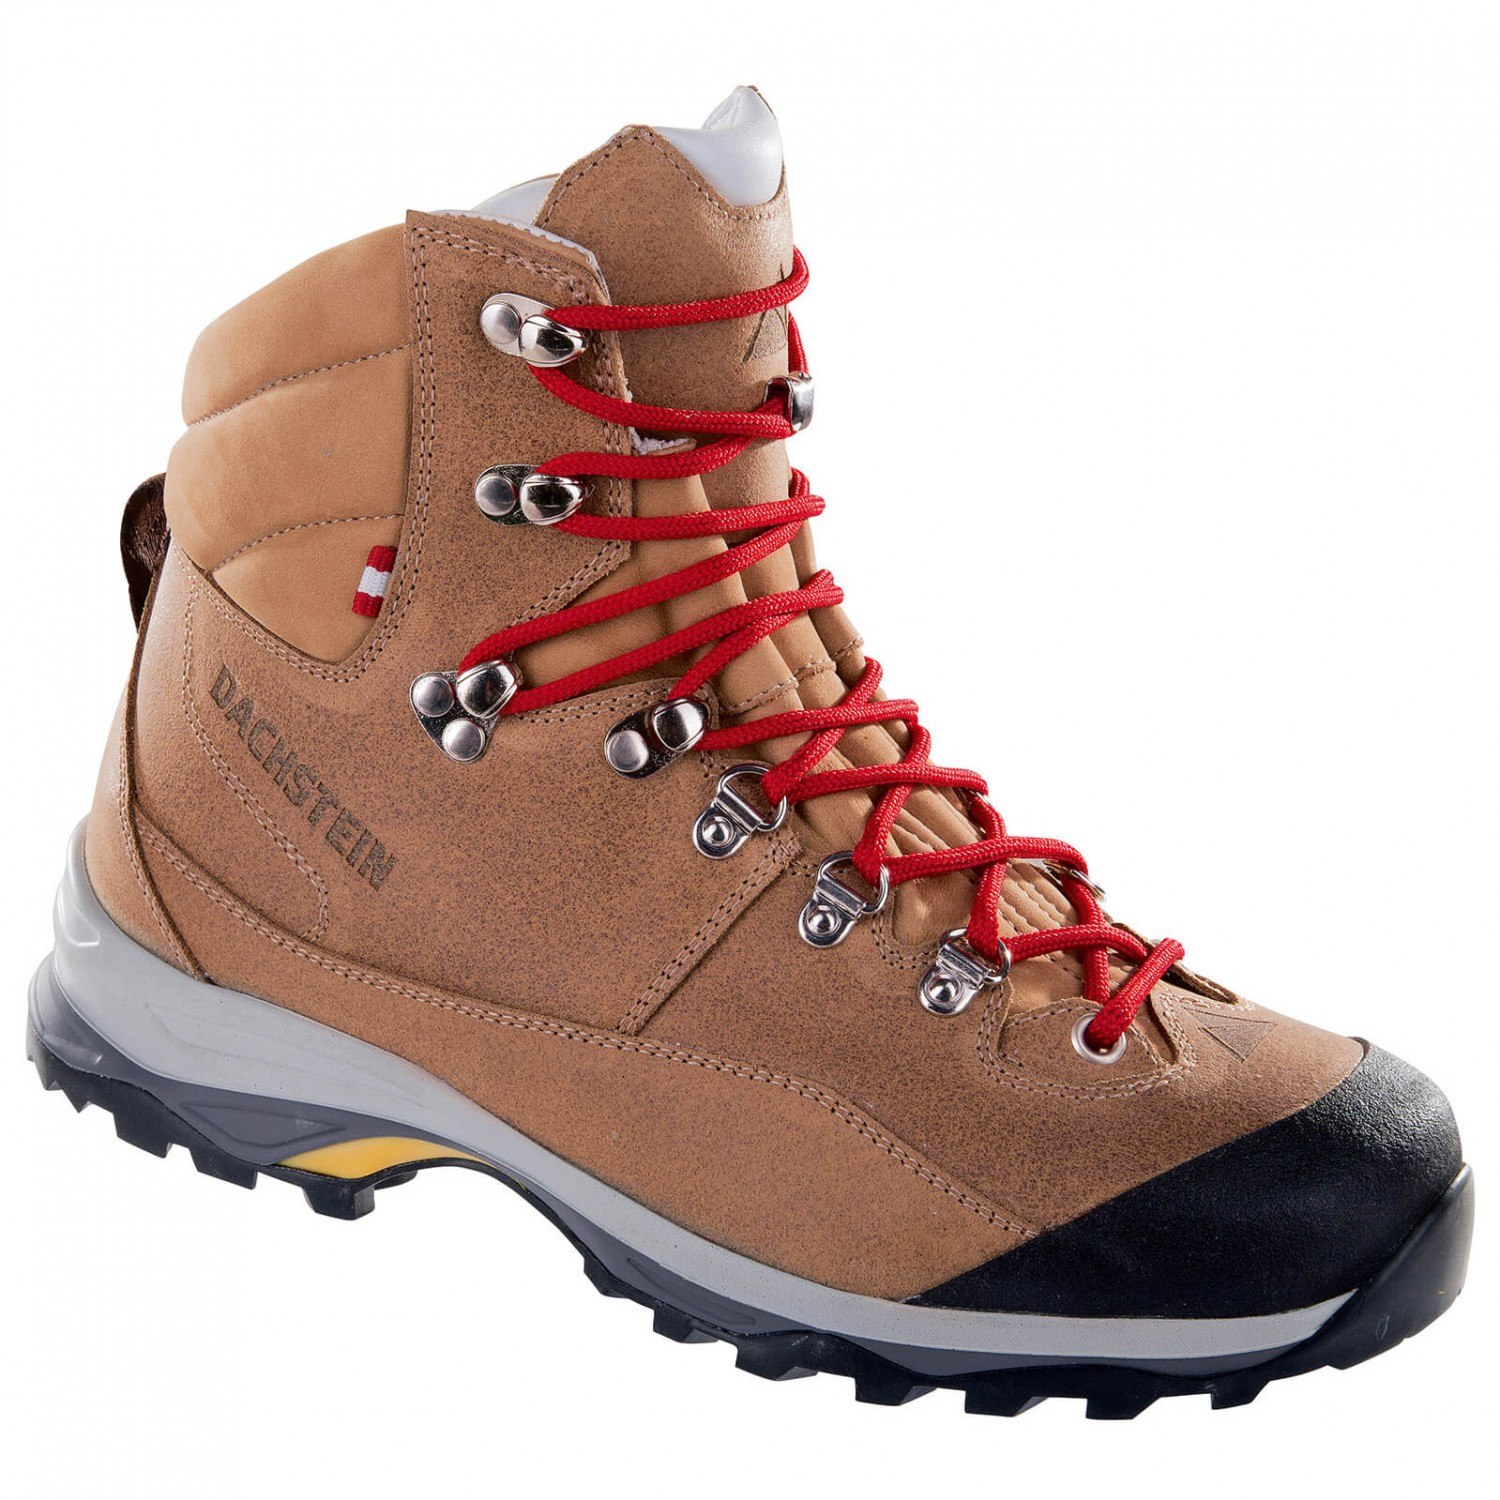 Dachstein Ramsau 2.0 Lth Brown Sugar Fire-30